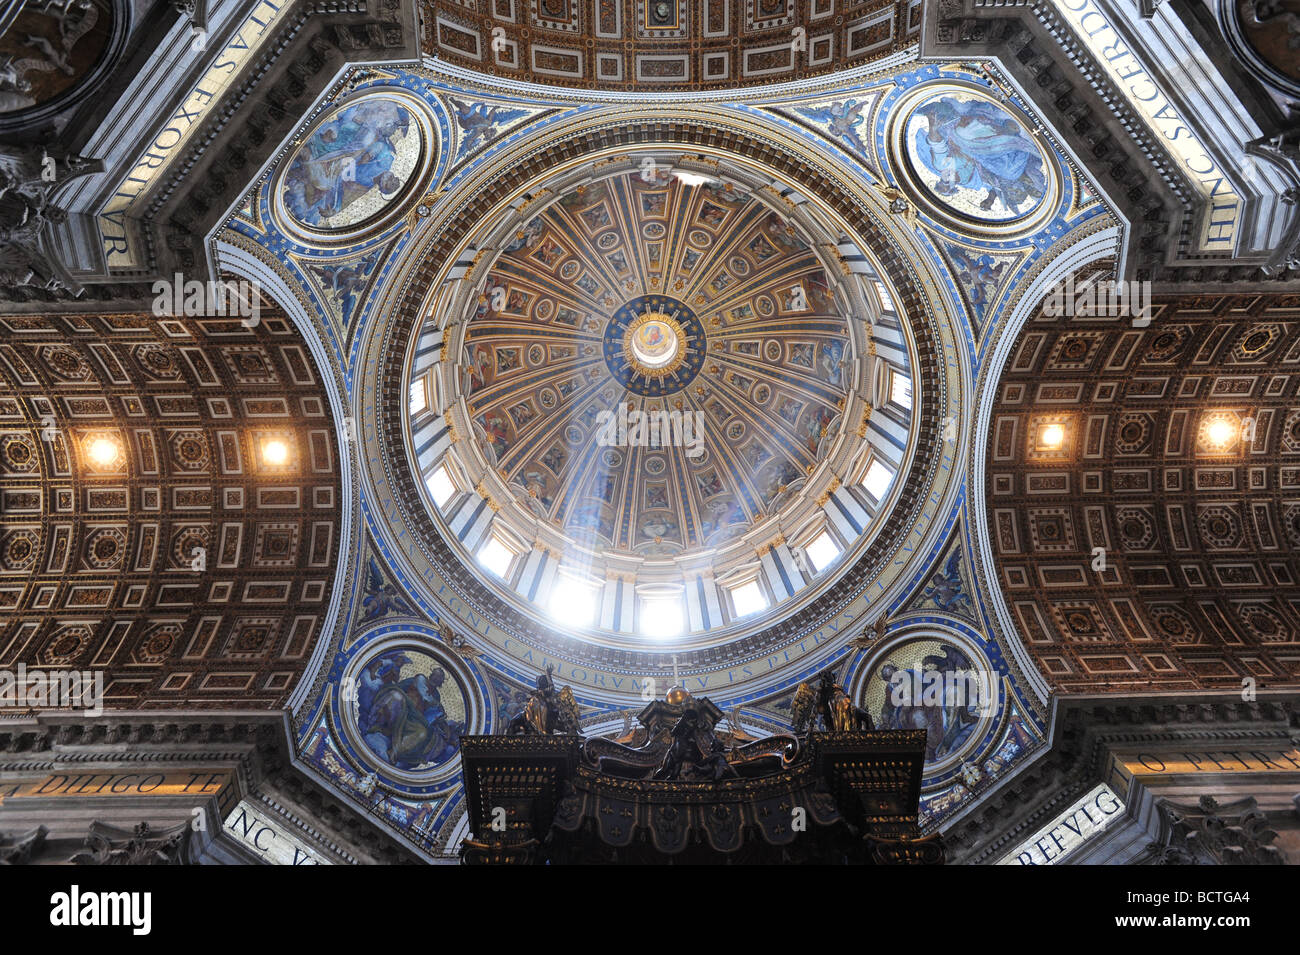 europe-vatican-city-looking-up-into-the-